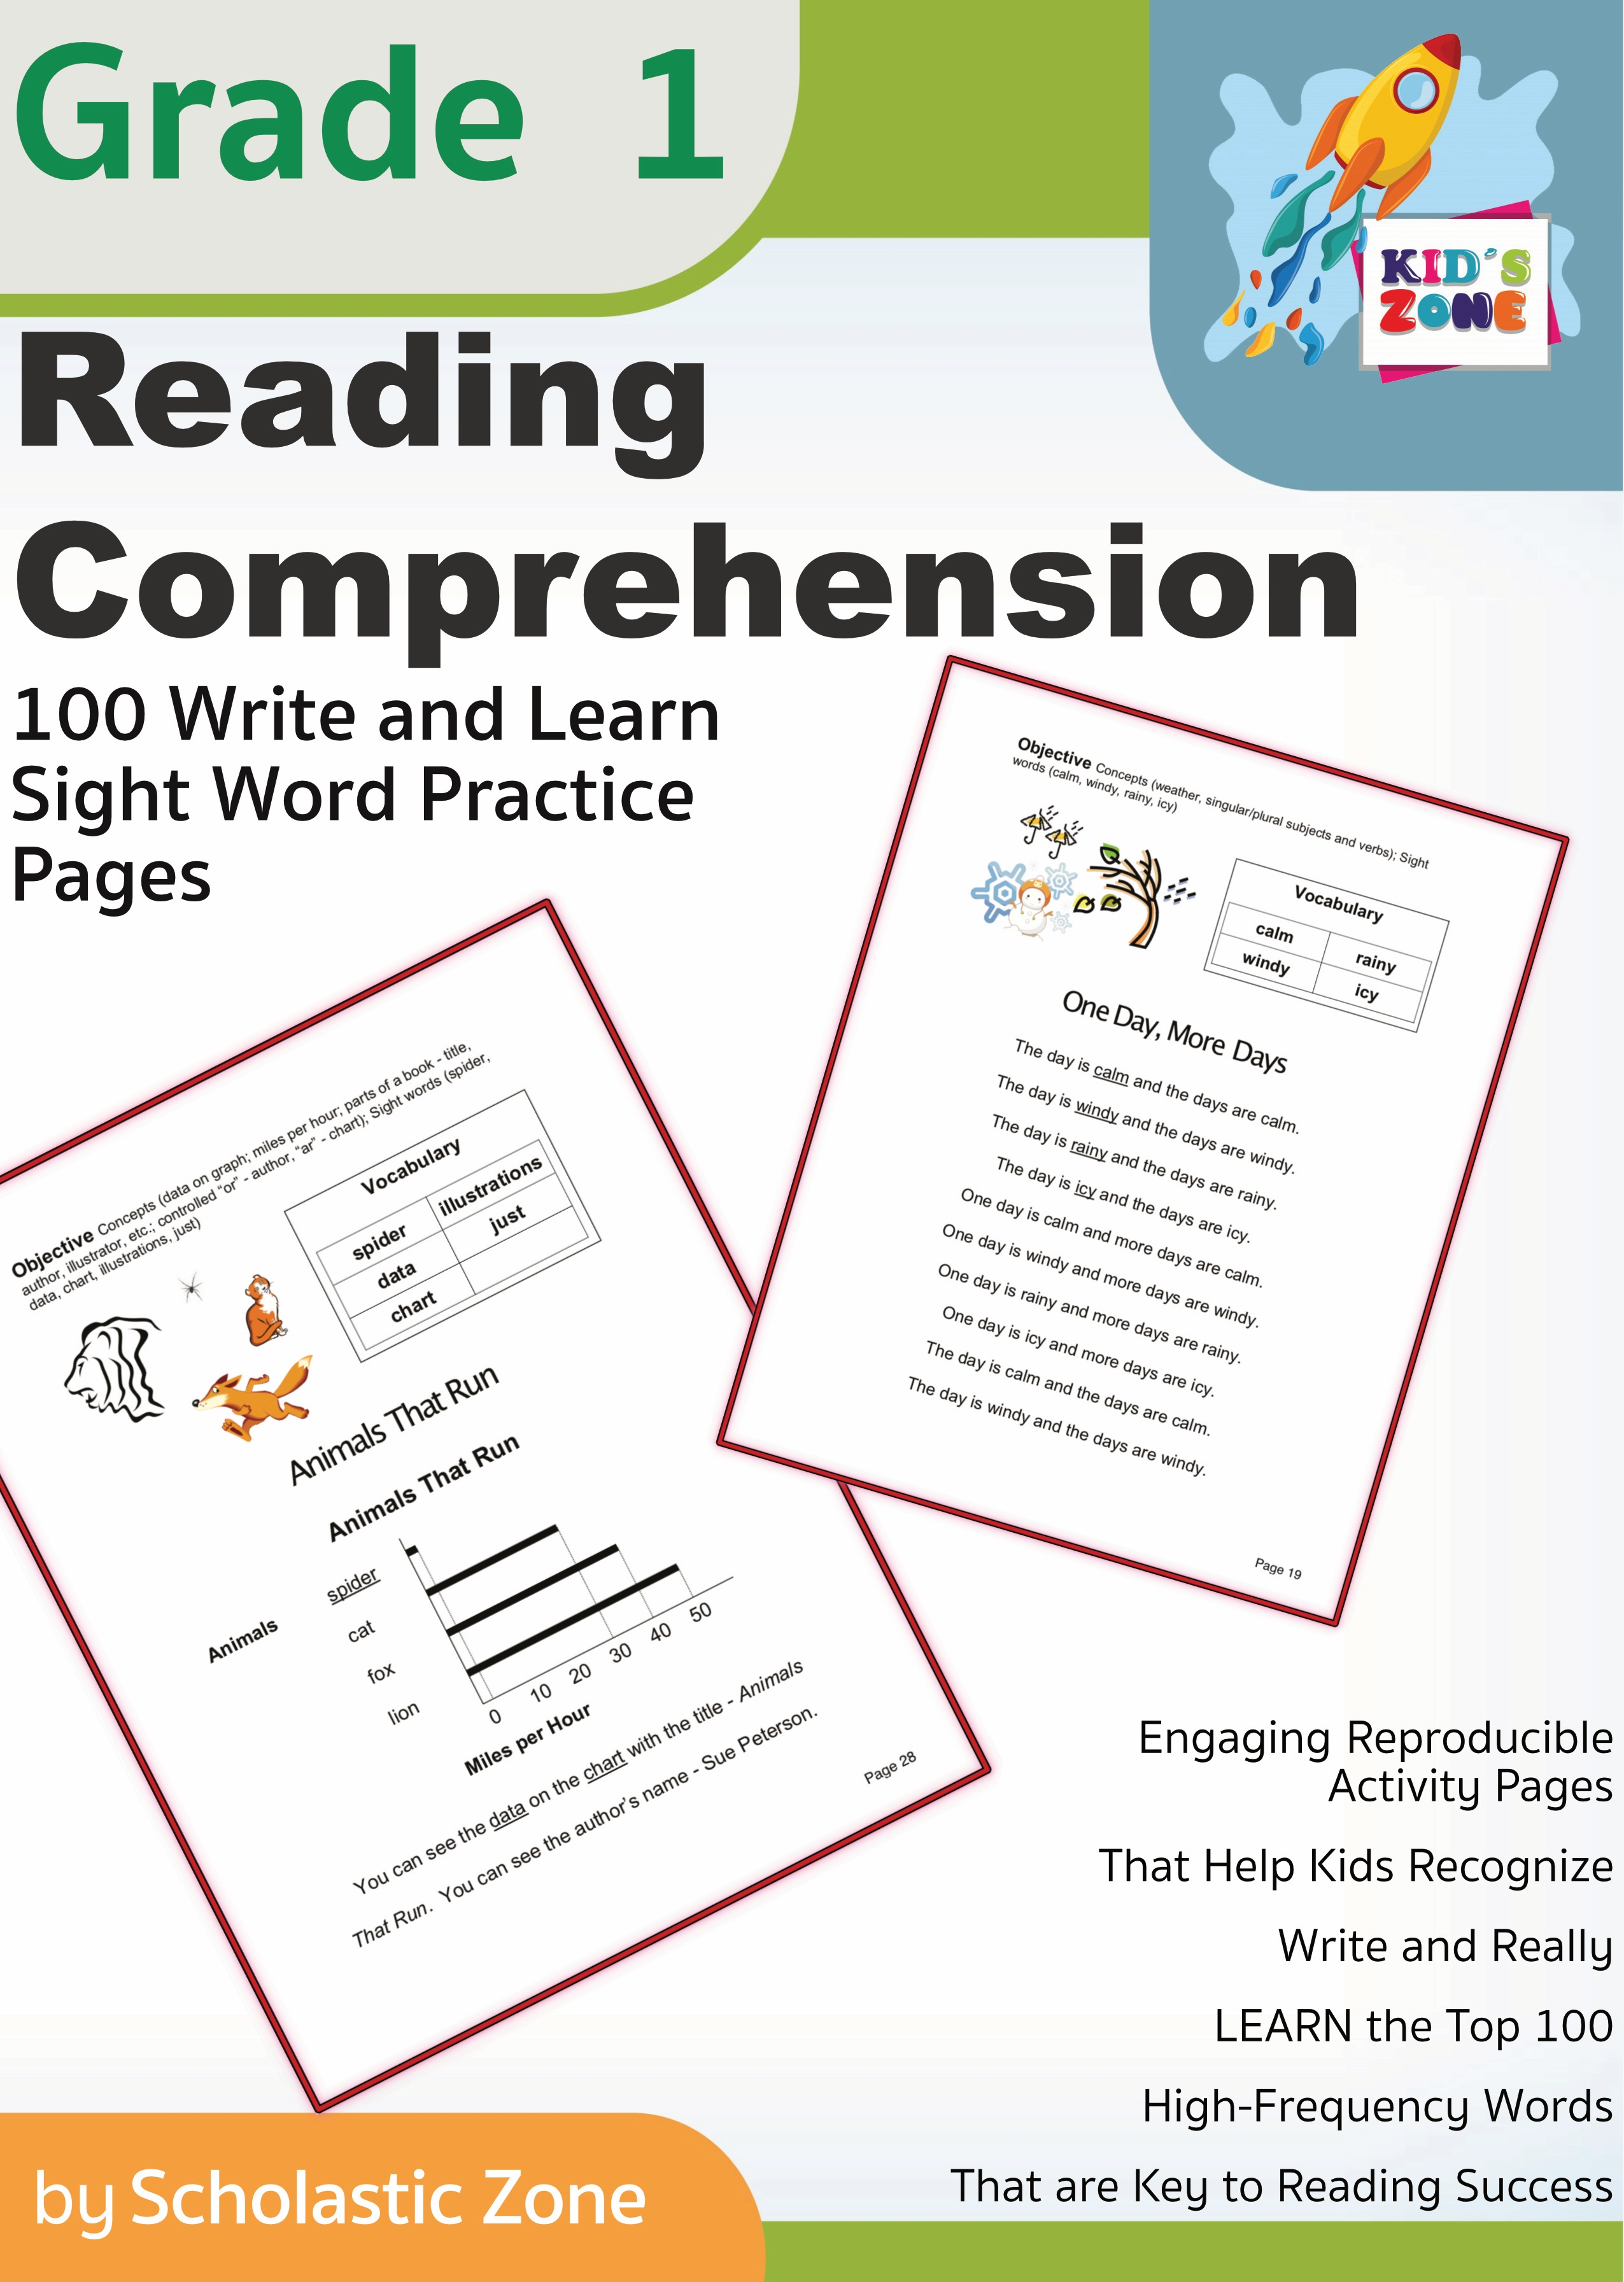 - Reading Comprehension Grade 1 - 100 Write-and-Learn Sight Word